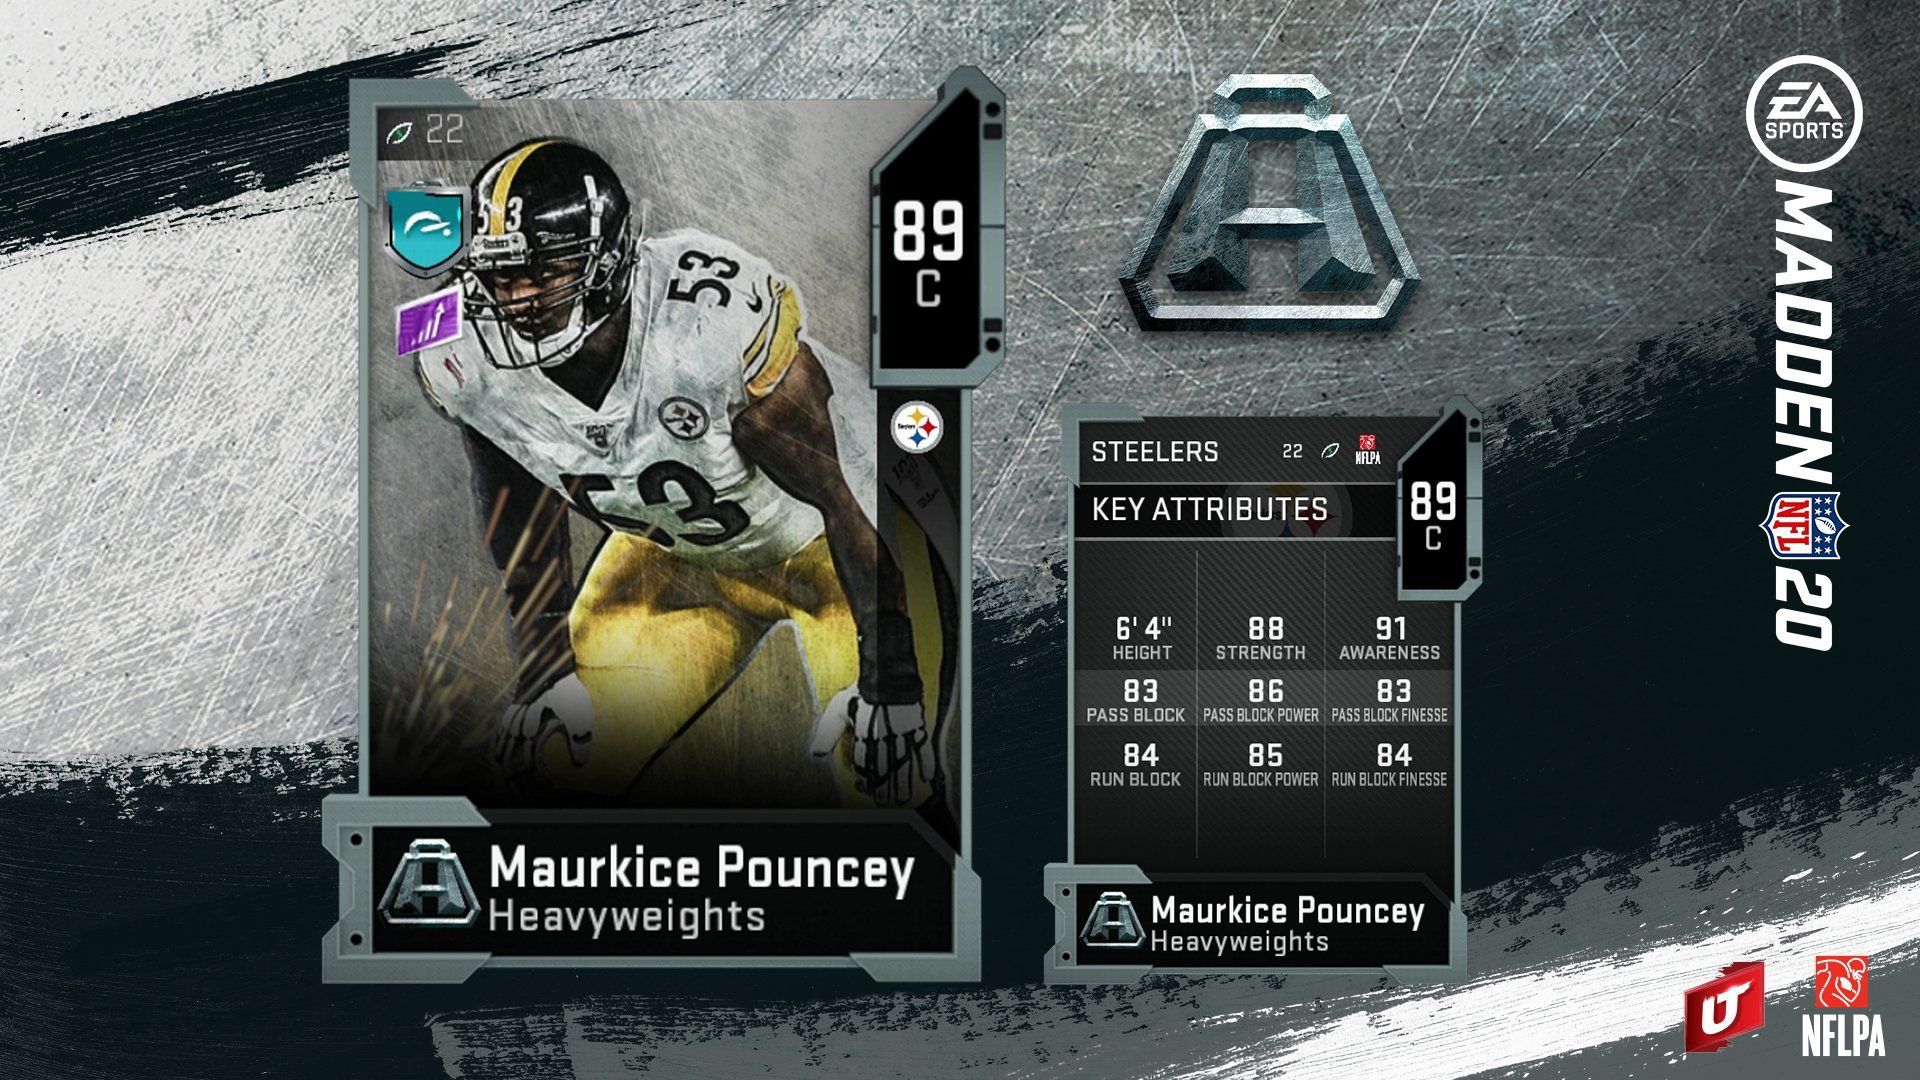 heavyweights-pouncey.jpg